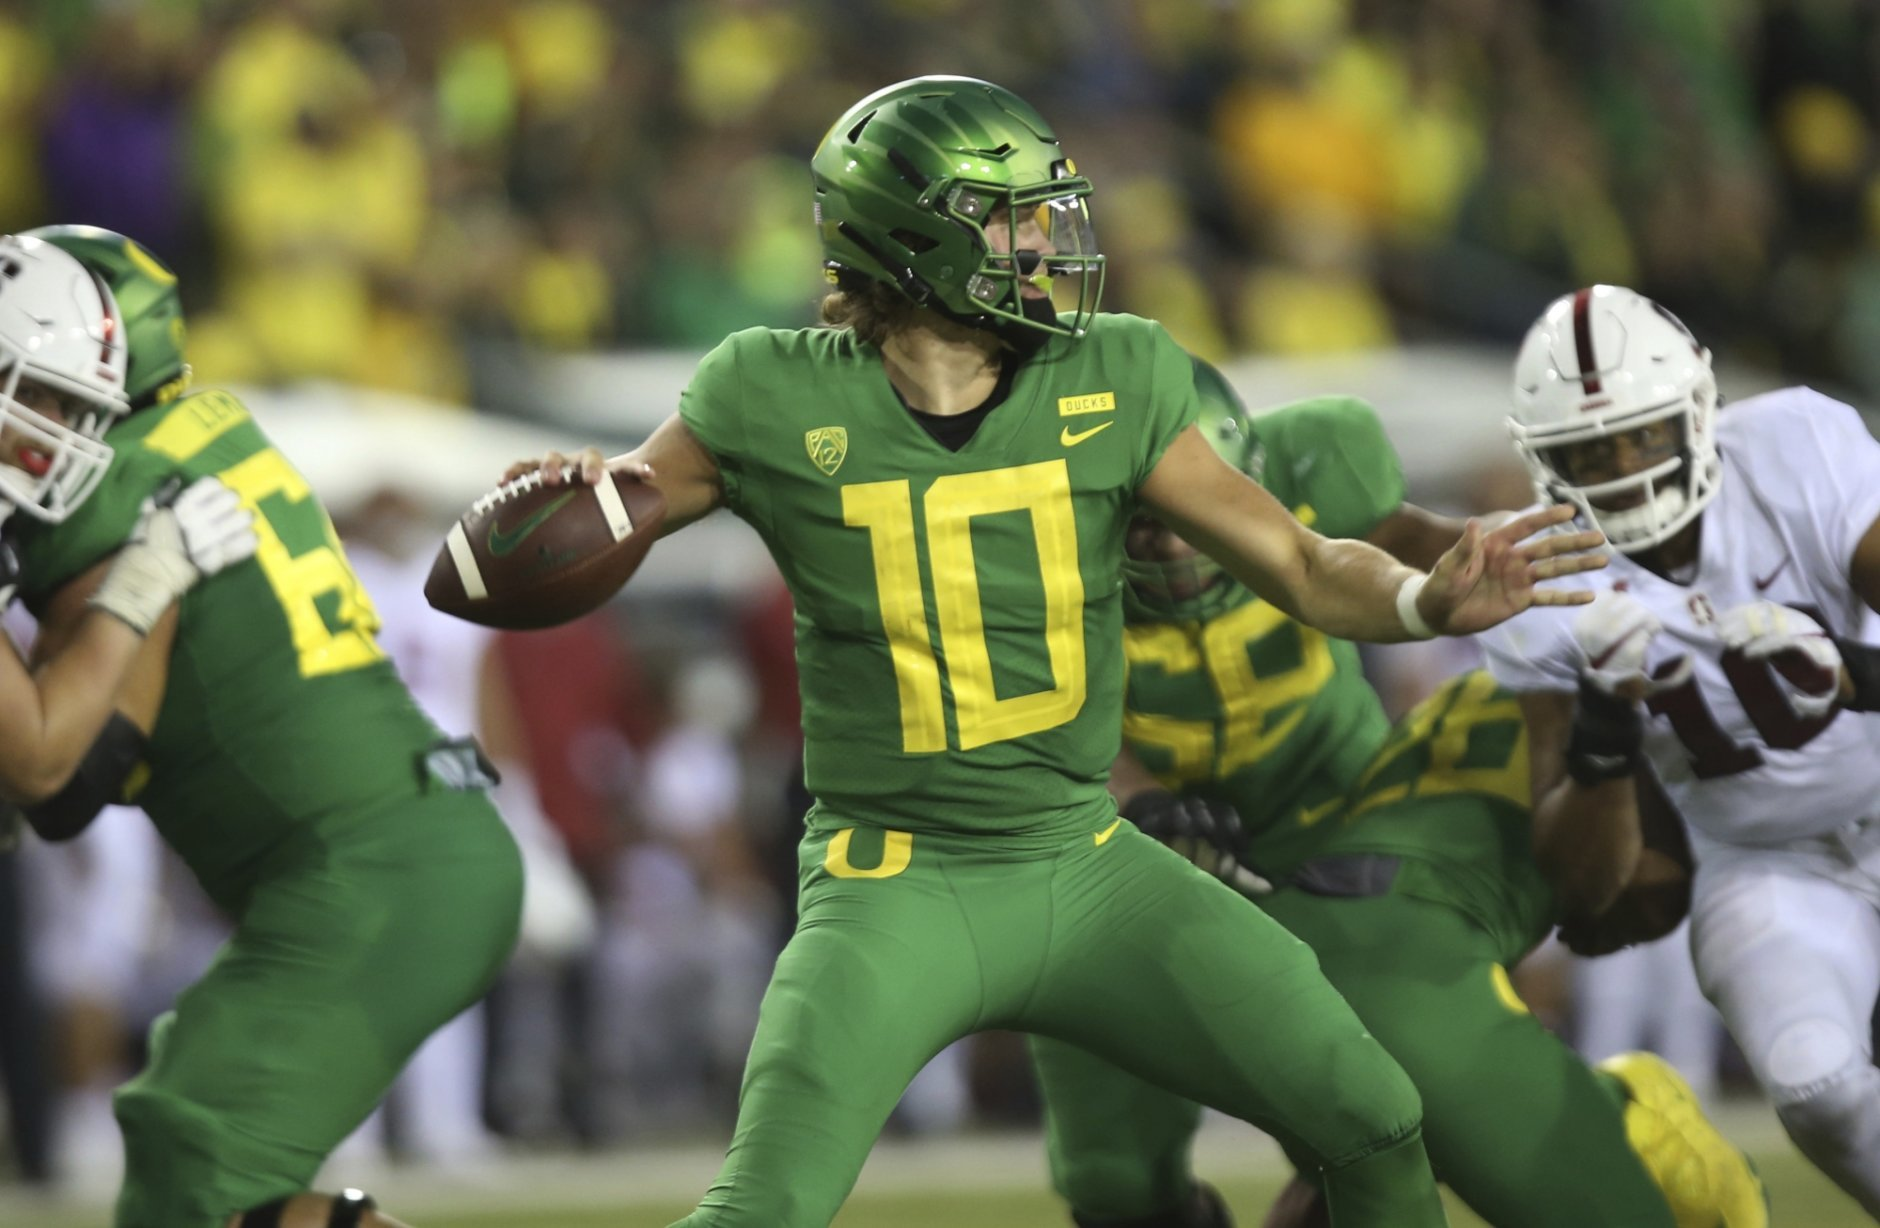 Oregon's Justin Herbert drops back to pass against Stanford during the third quarter an NCAA college football game Saturday, Sept. 22, 2018, in Eugene, Ore. (AP Photo/Chris Pietsch)